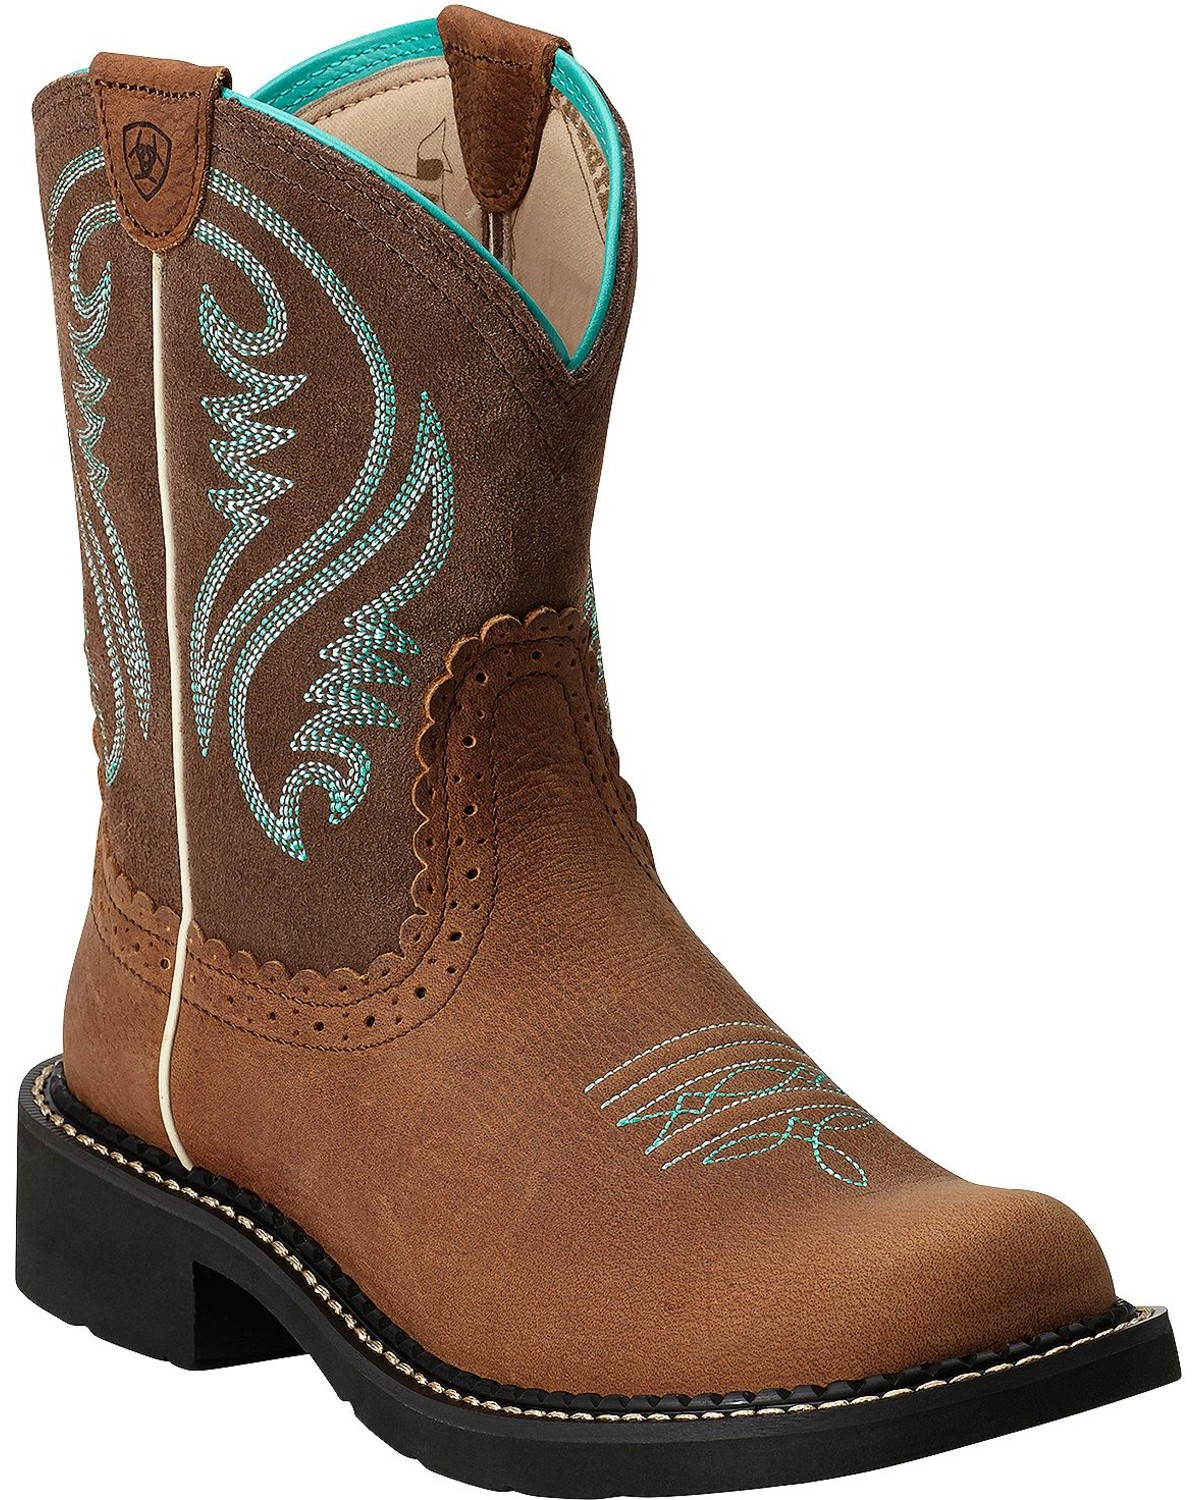 Ariat Boots Womens - Boot Yc